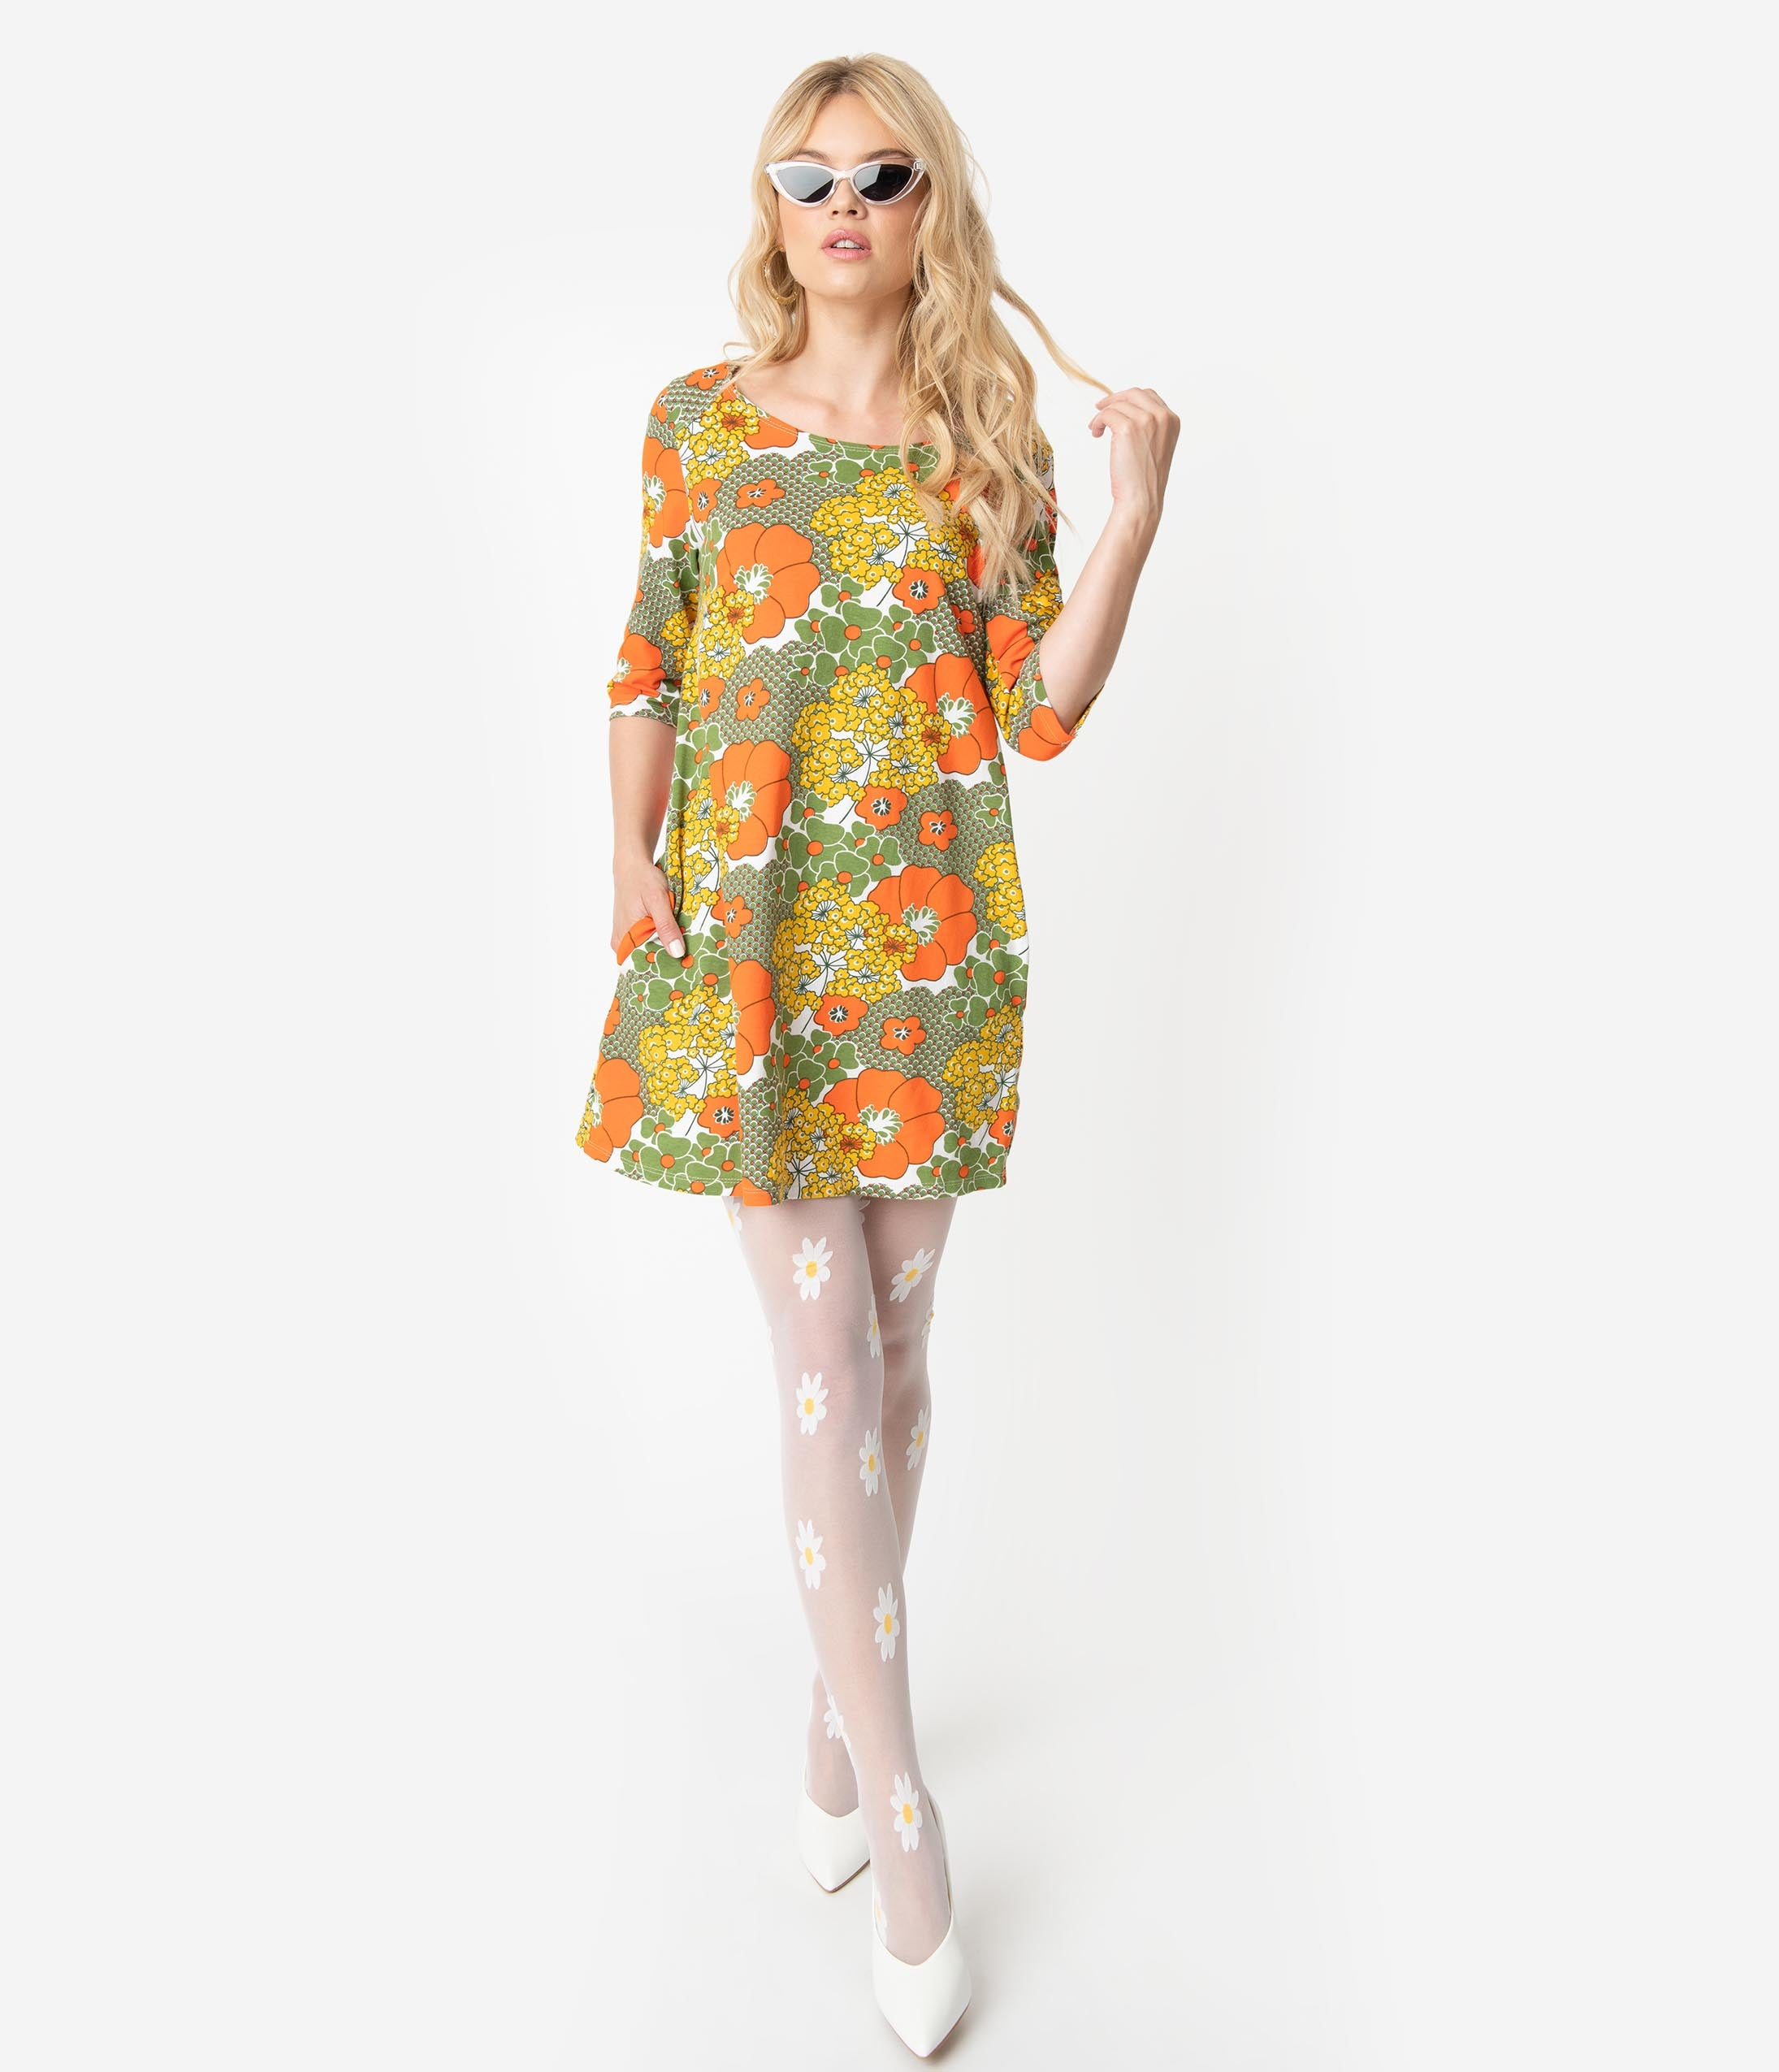 500 Vintage Style Dresses for Sale | Vintage Inspired Dresses 1960S Style Olive Green  Orange Retro Floral Print Cotton Tunic Dress $58.00 AT vintagedancer.com